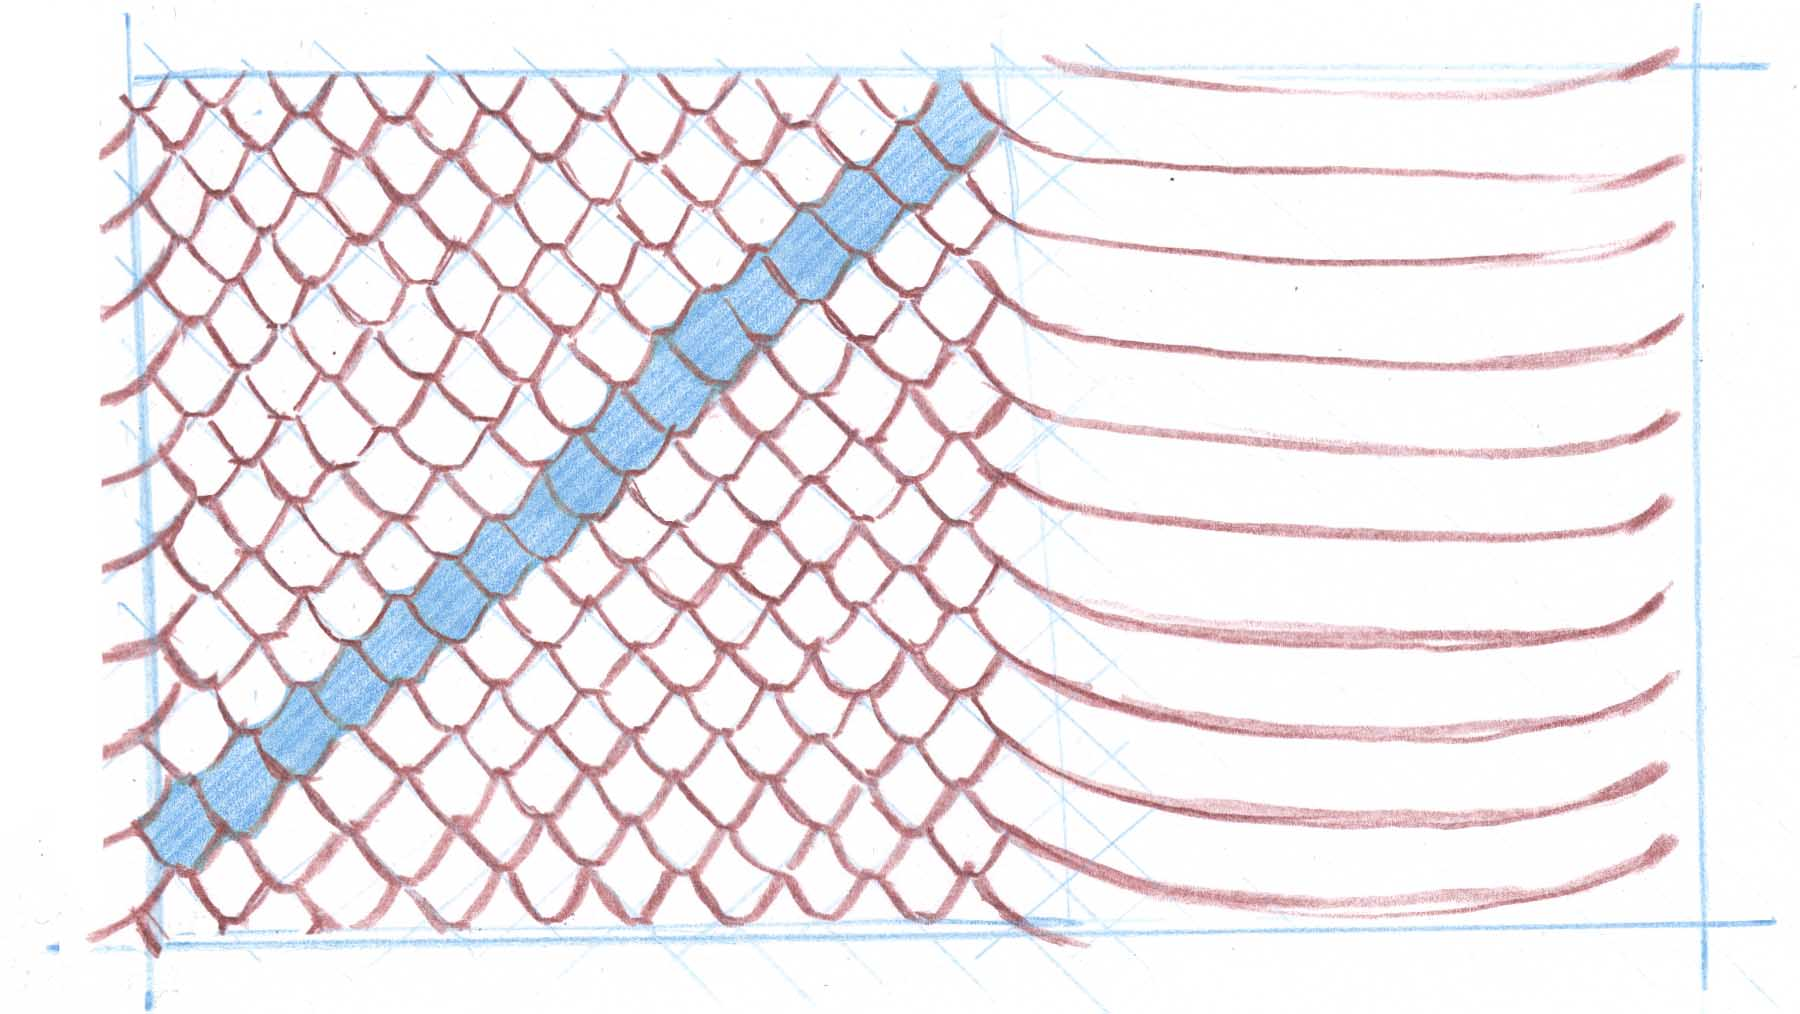 graphic royalty free library How to draw scales. Drawing snake skin